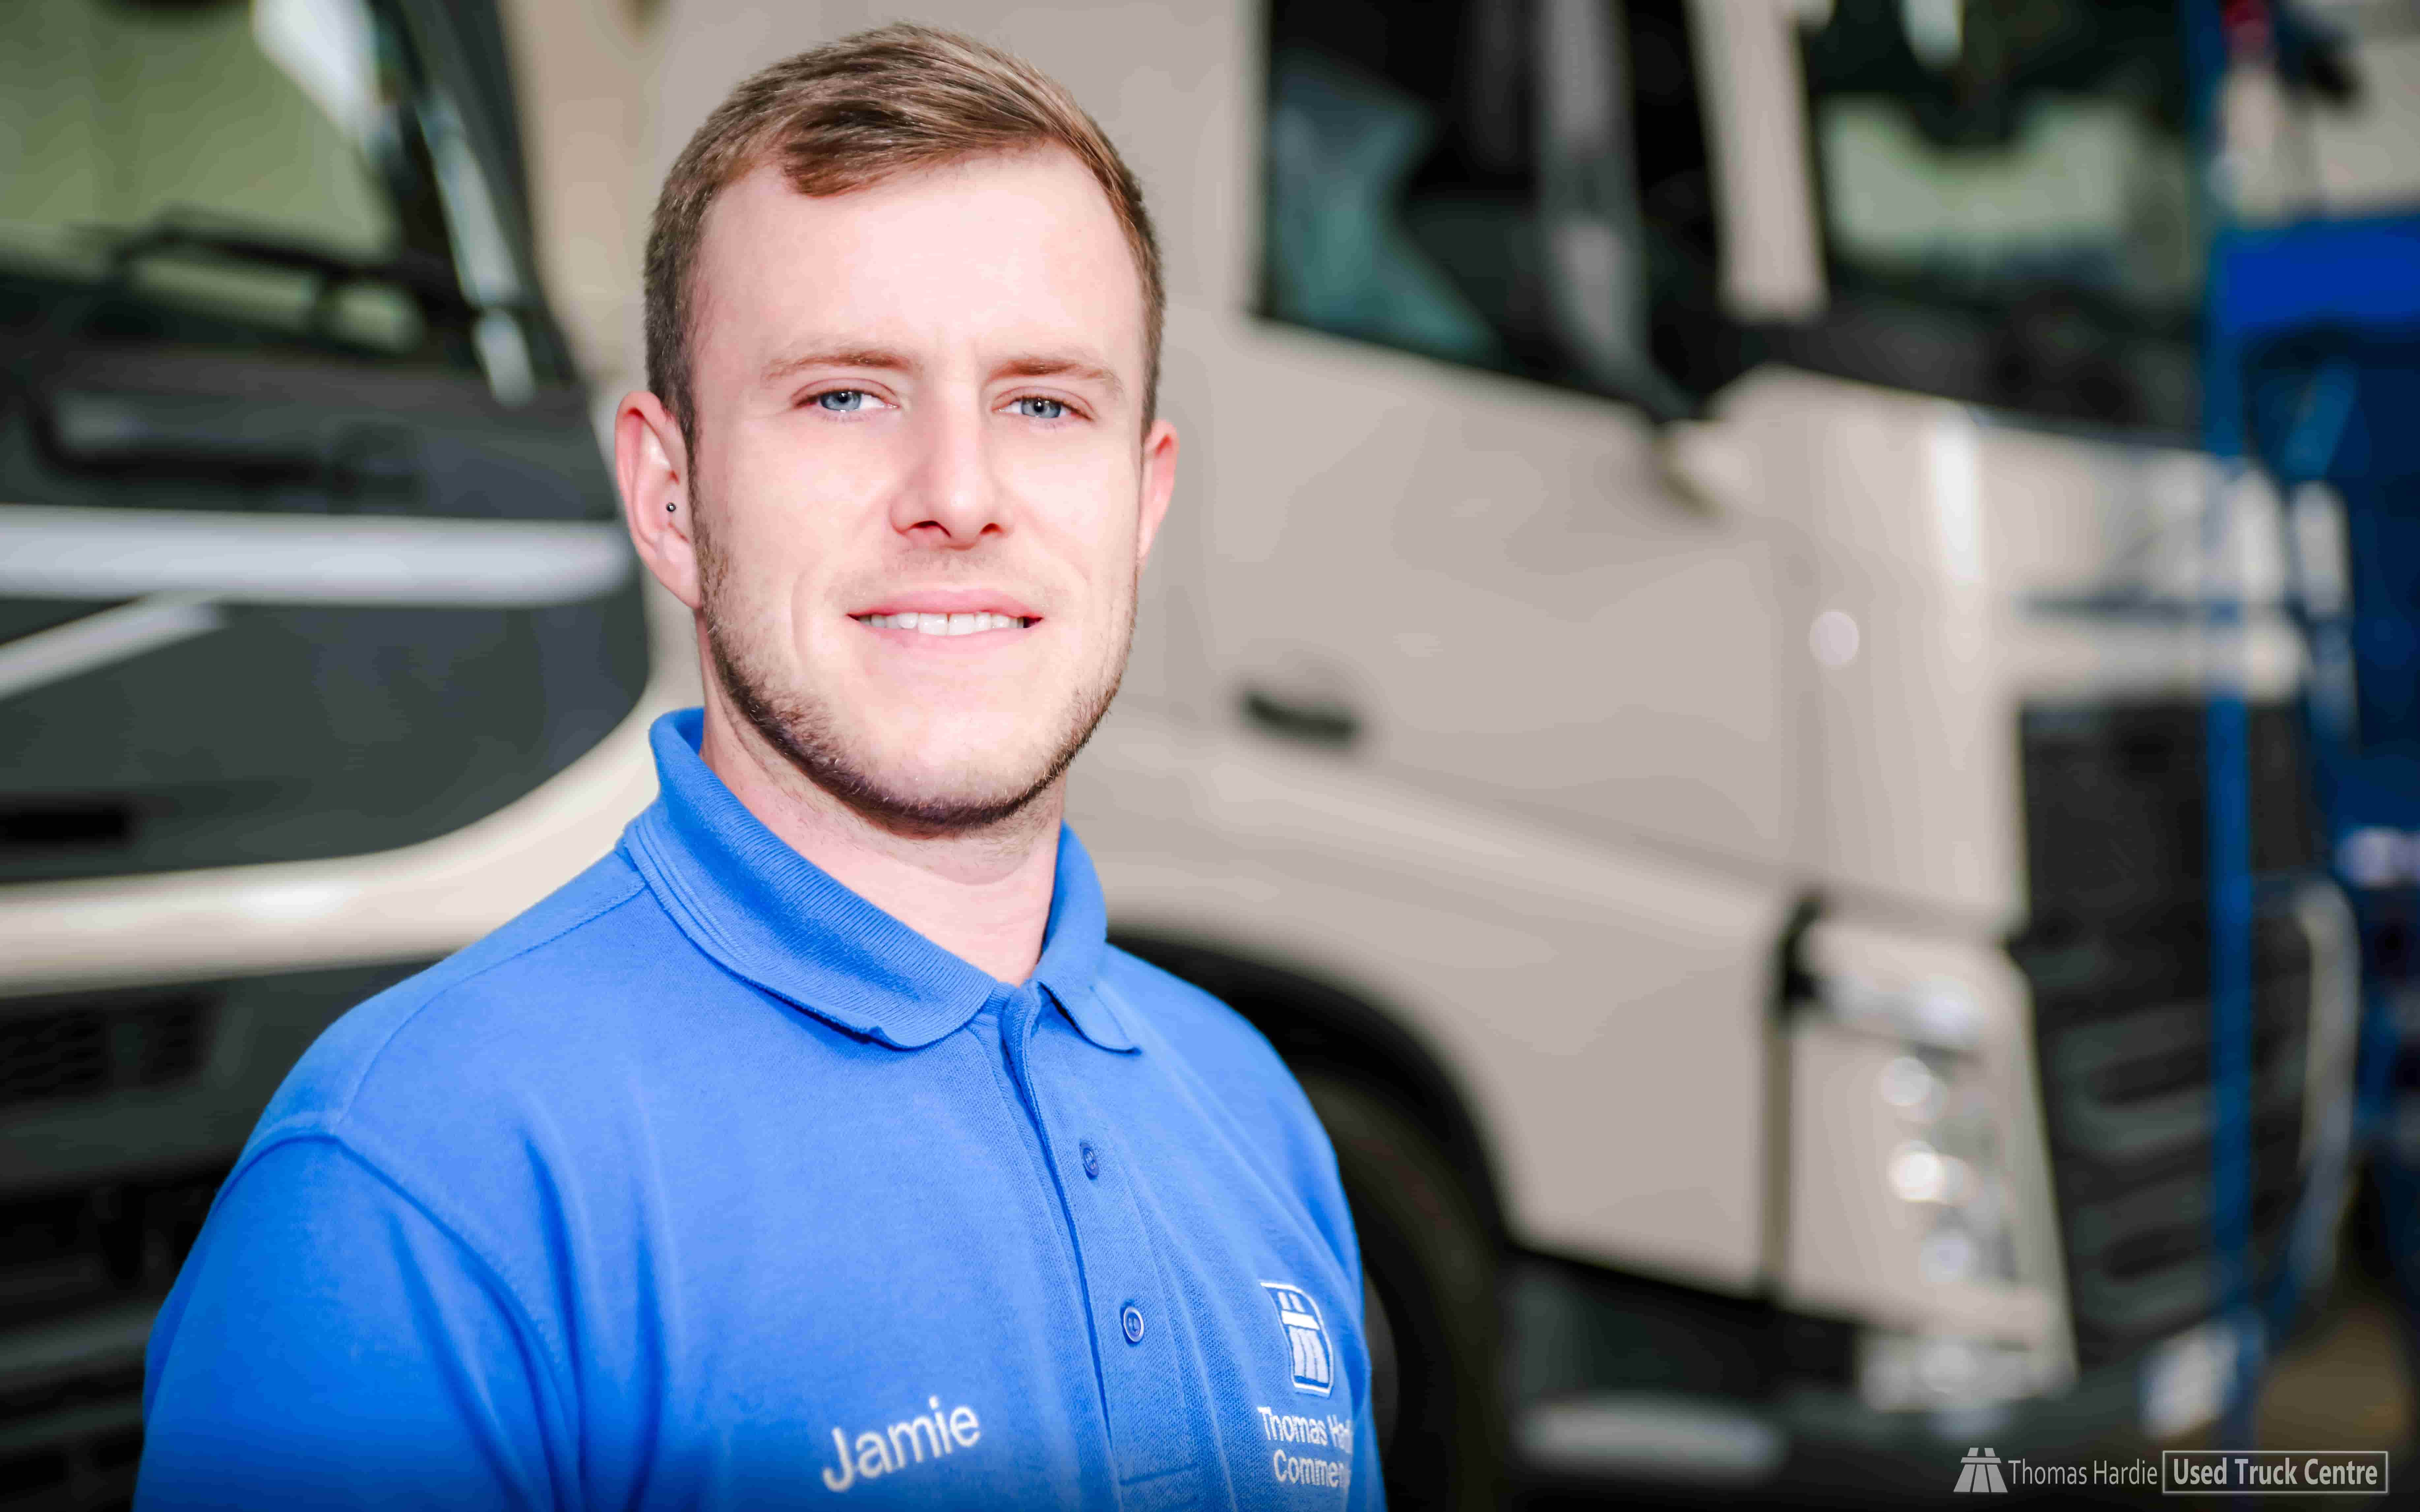 Thomas Hardie Used Volvo Trucks Centre - About Us - Thomas Hardie Used Trucks in Middlewich, Cheshire